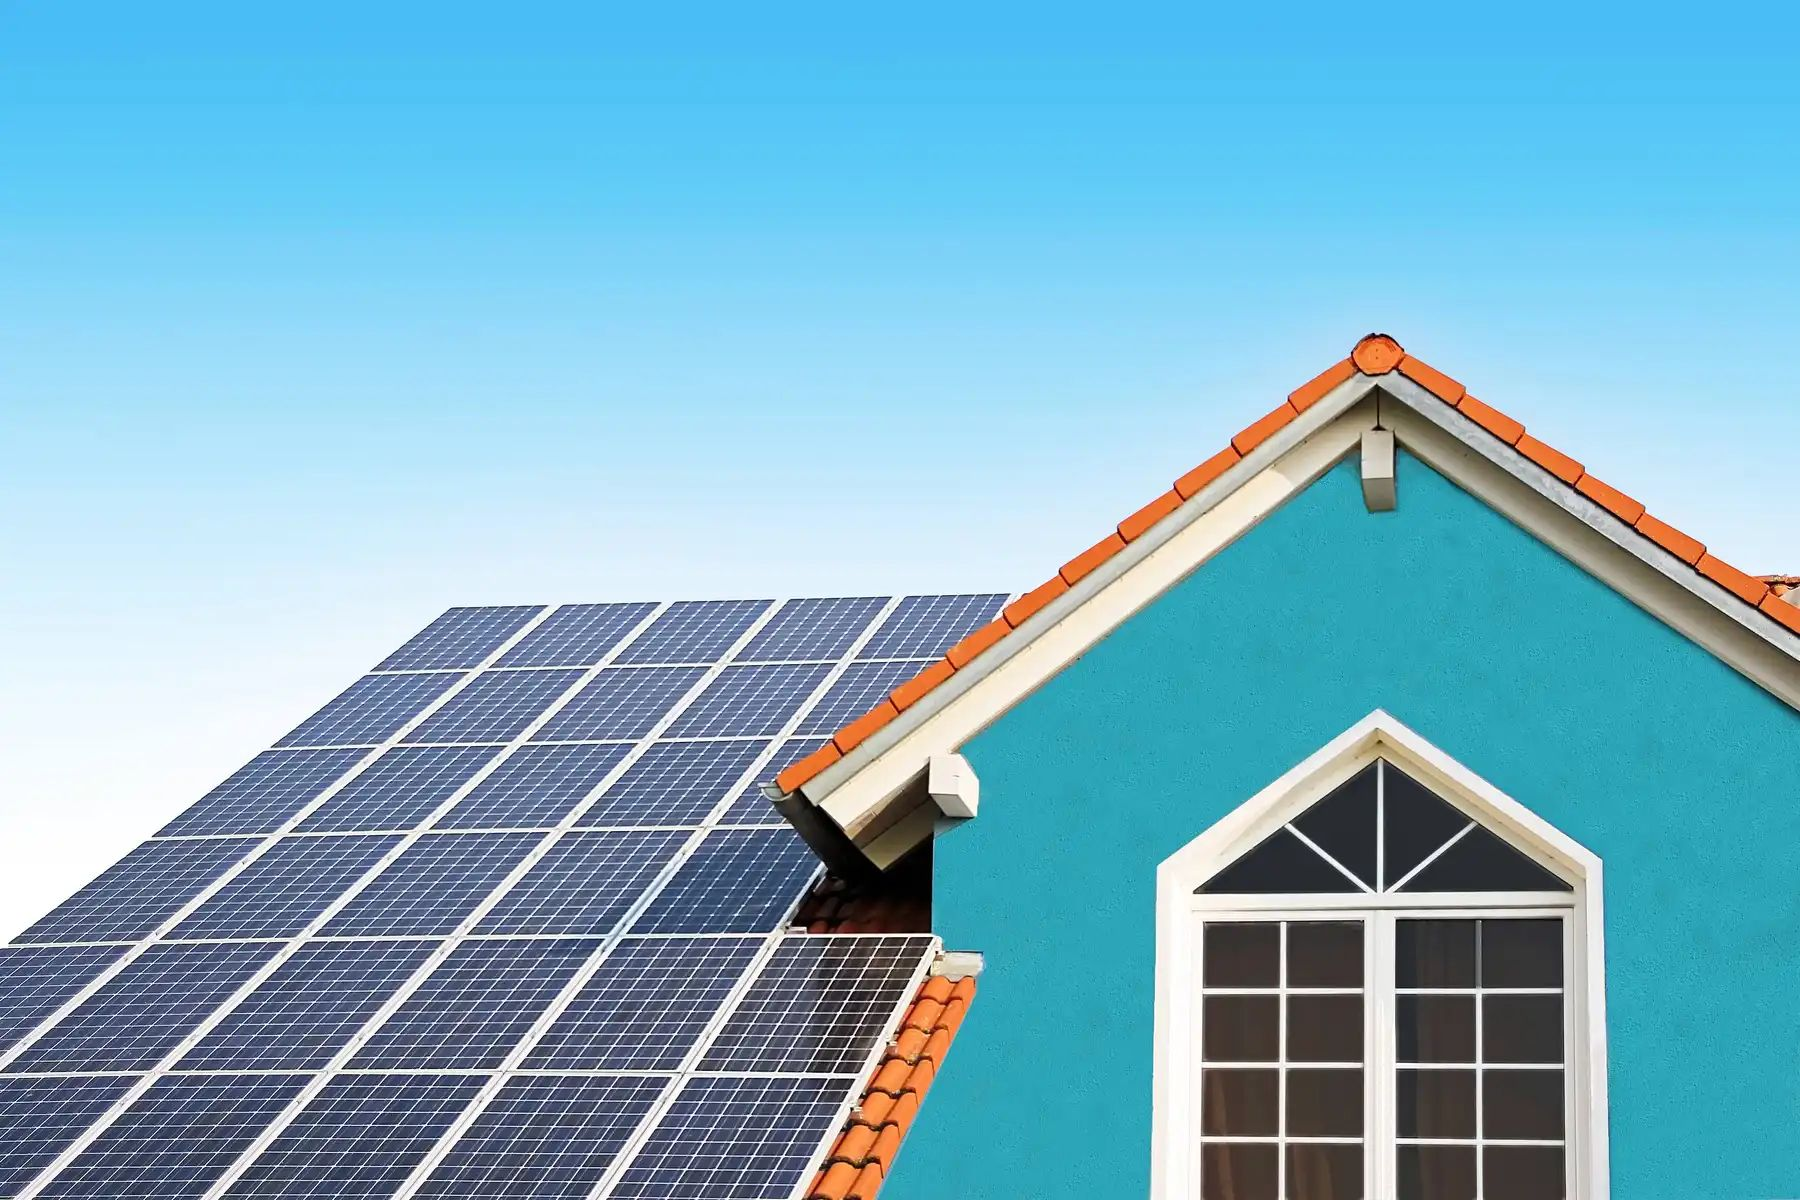 The roof and top of a blue house with solar panels and blue sky in the background